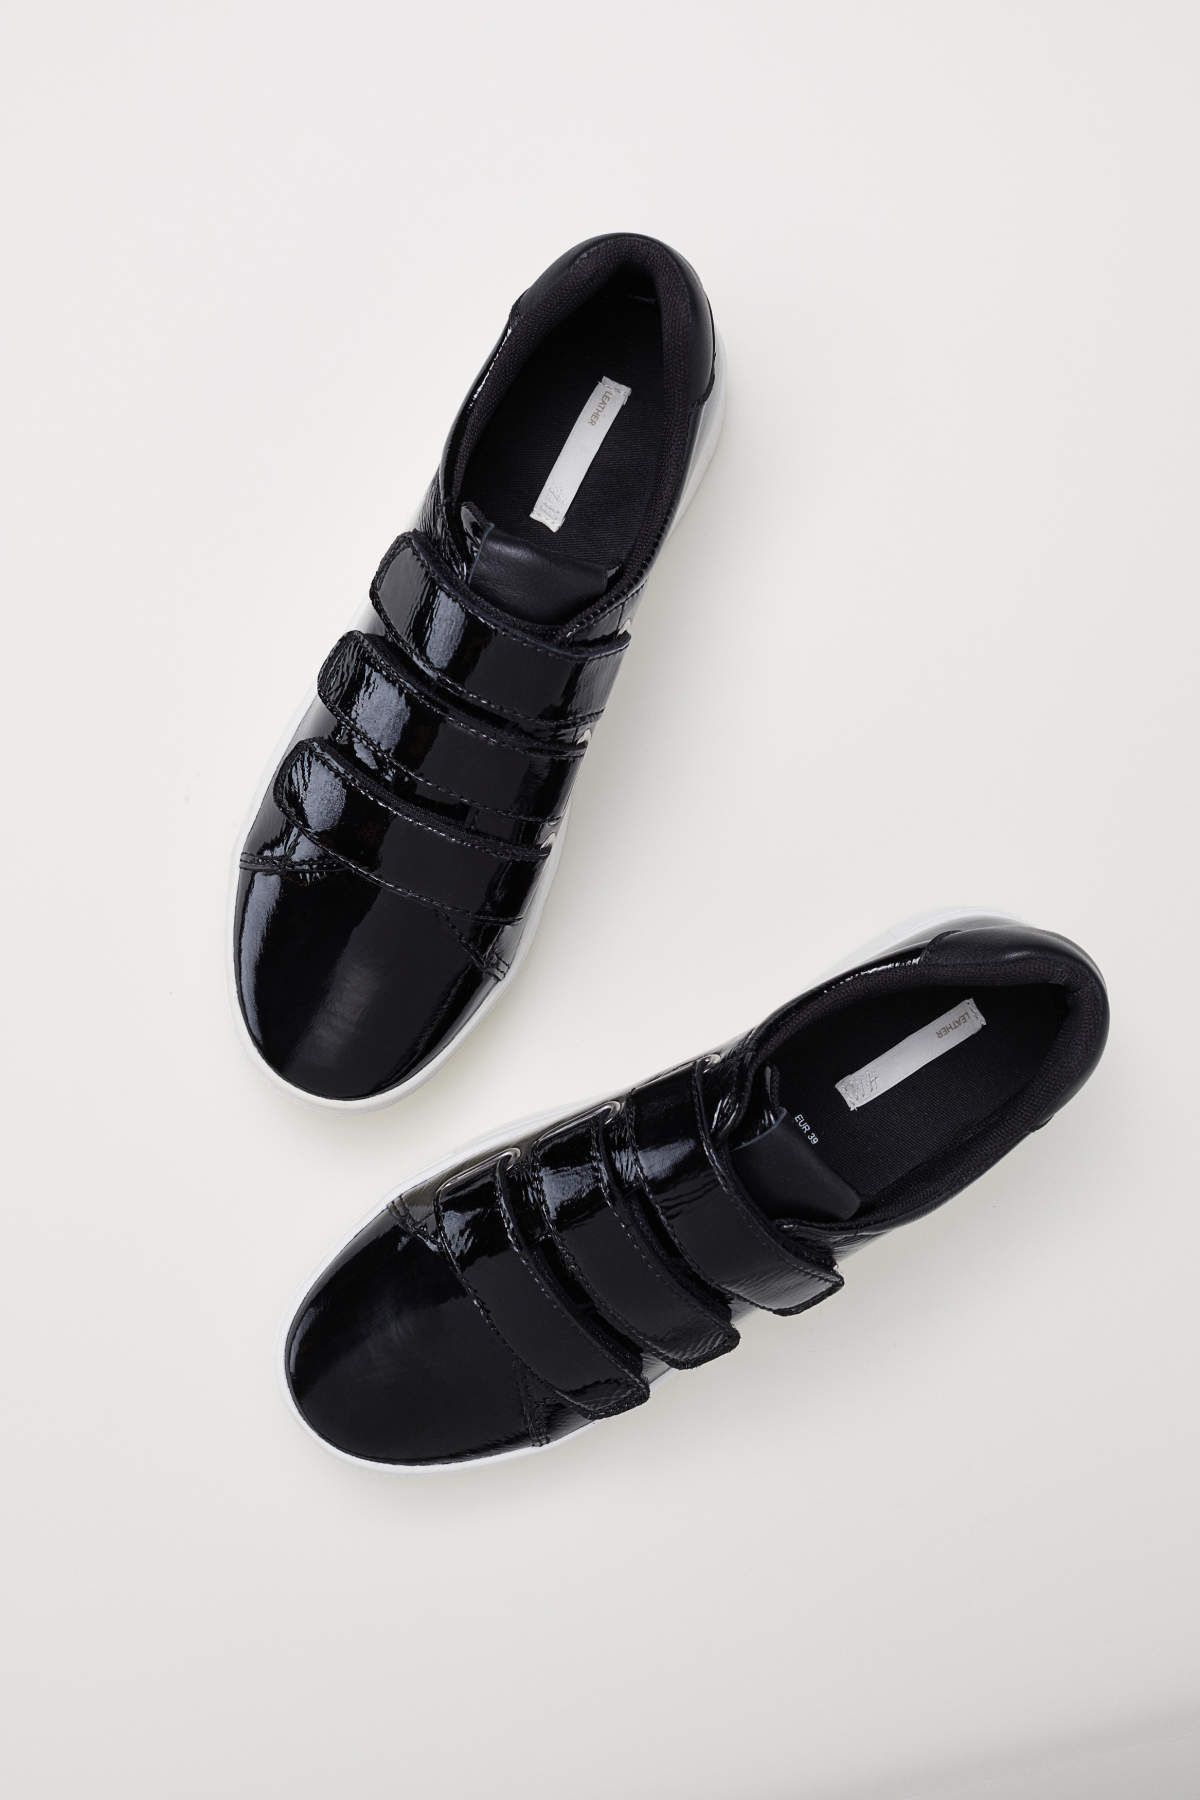 Patent Leather Sneakers Black Women H M Us Sneakers Black Sneakers Leather Sneakers